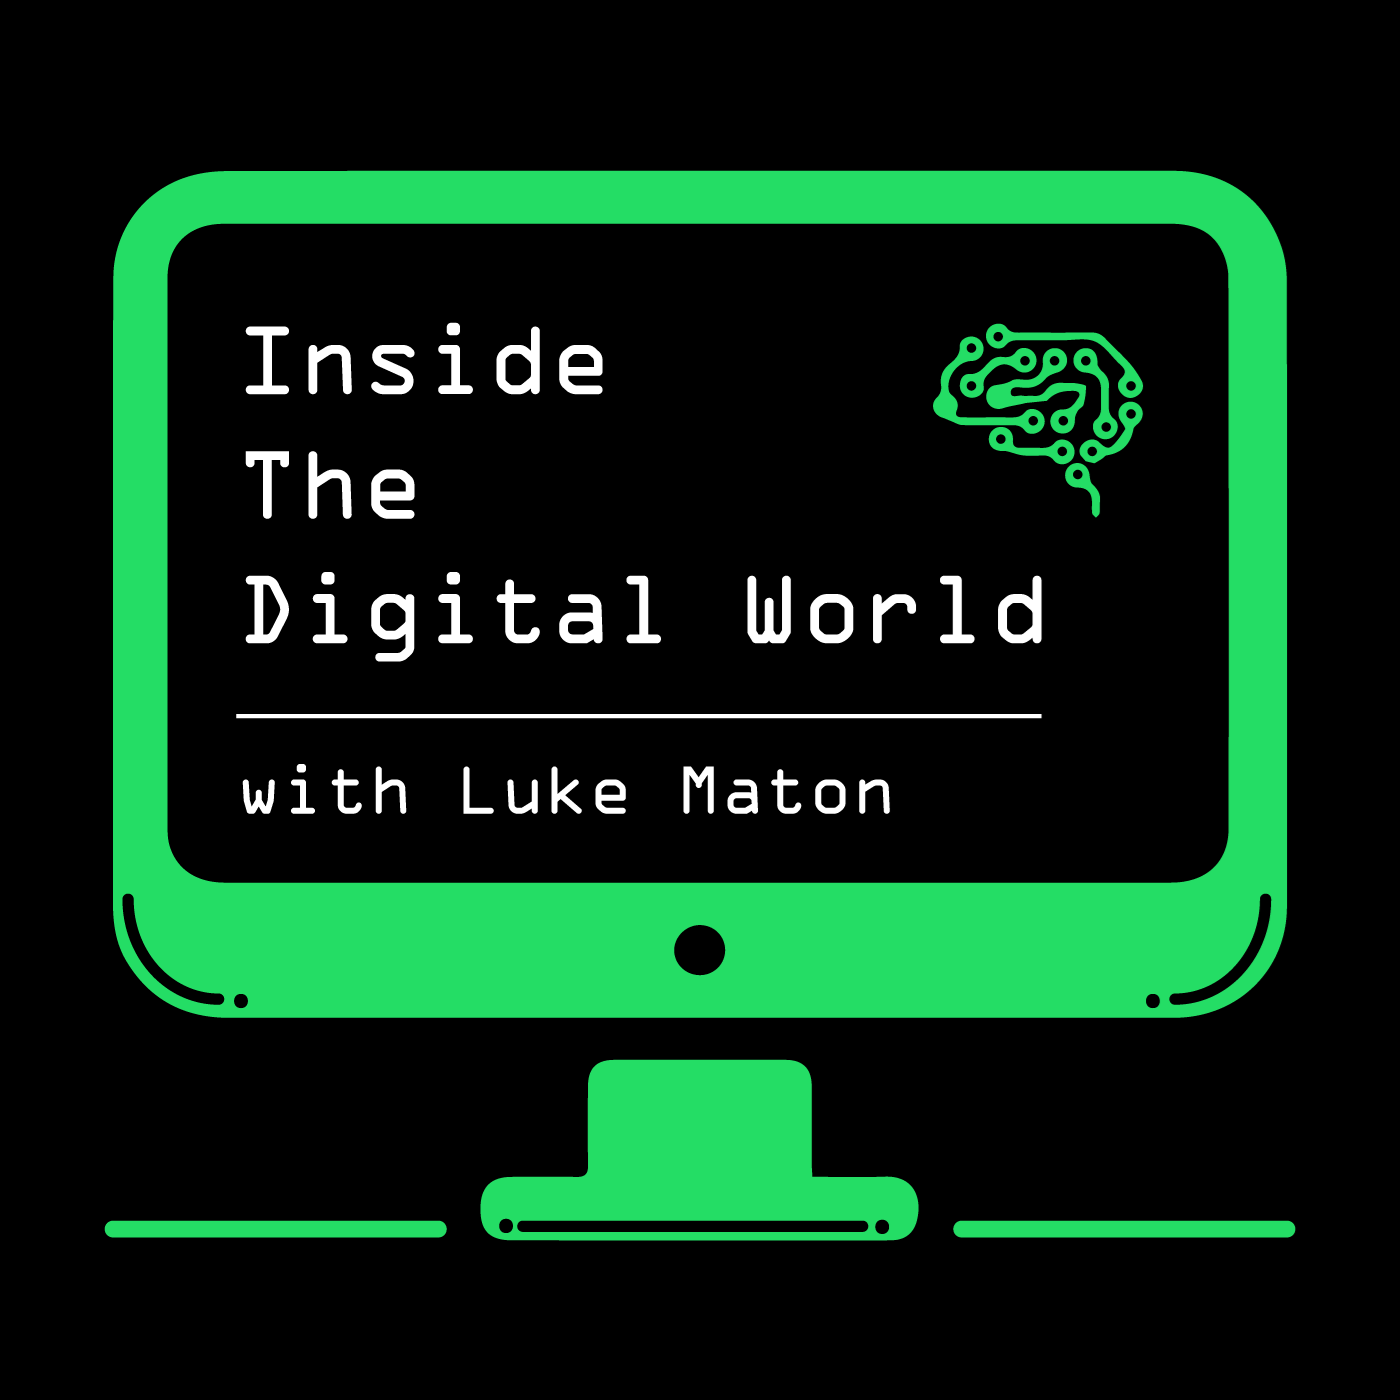 Inside The Digital World with Luke-01-04-2020 - Luke discusses the myth that there is a connection between 5G and Coronavirus